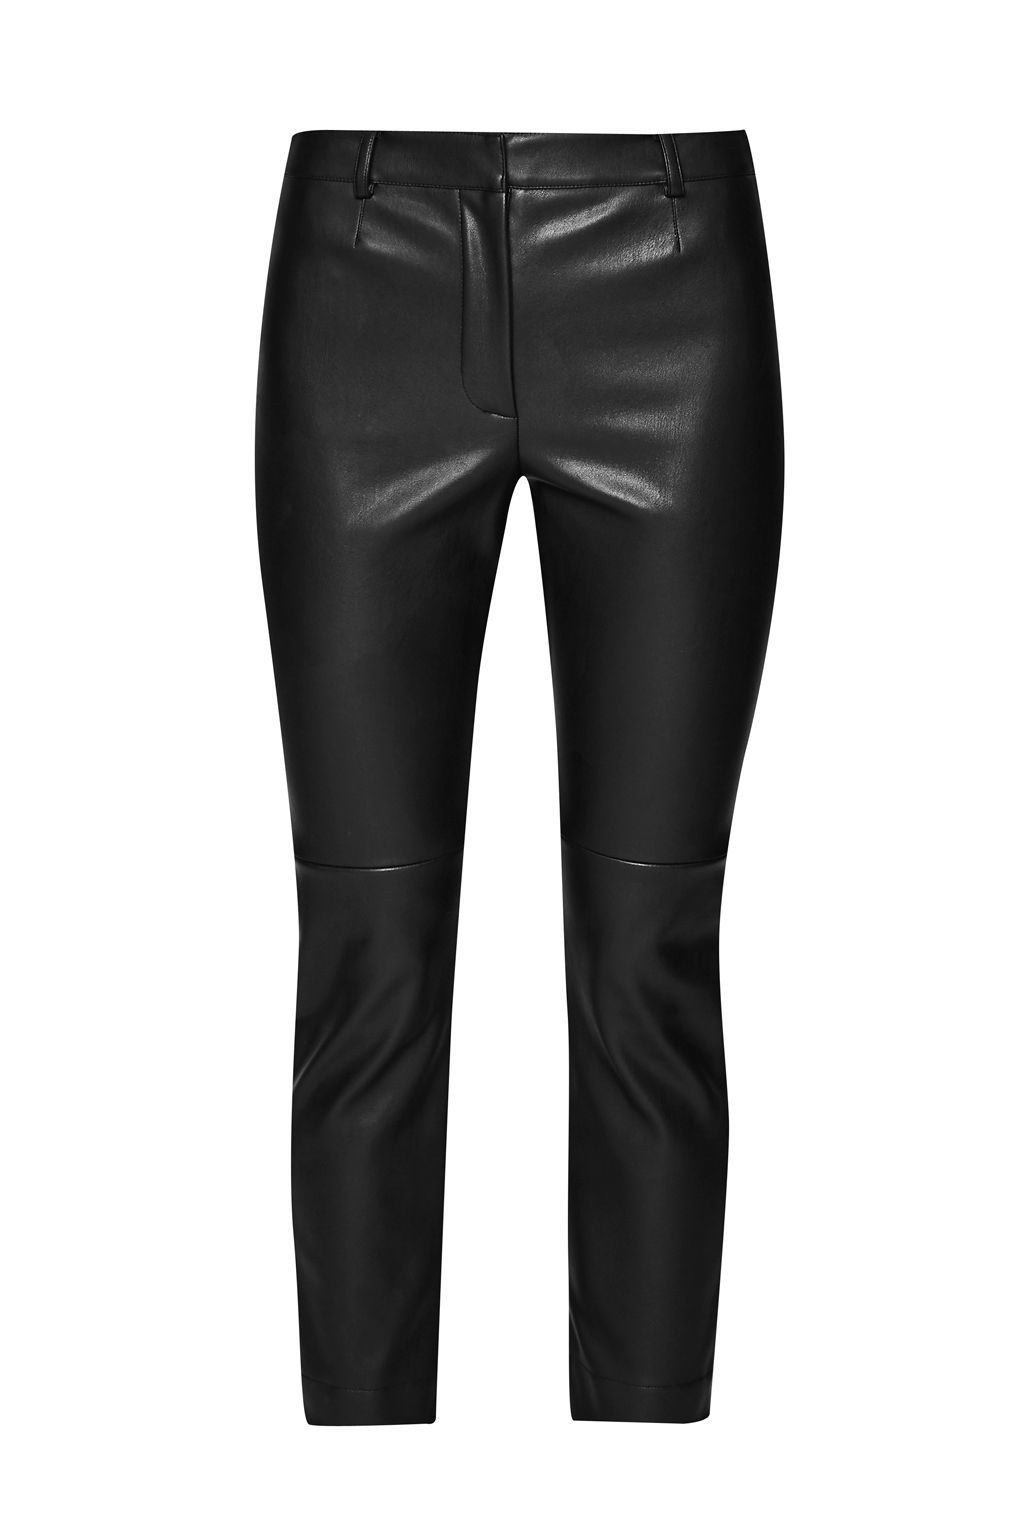 Atlantic Faux Leather Cropped Trousers, Black - pattern: plain; waist: mid/regular rise; predominant colour: black; occasions: evening, creative work; length: ankle length; texture group: leather; fit: slim leg; pattern type: fabric; style: standard; fibres: pvc/polyurethene - 100%; season: a/w 2015; wardrobe: highlight